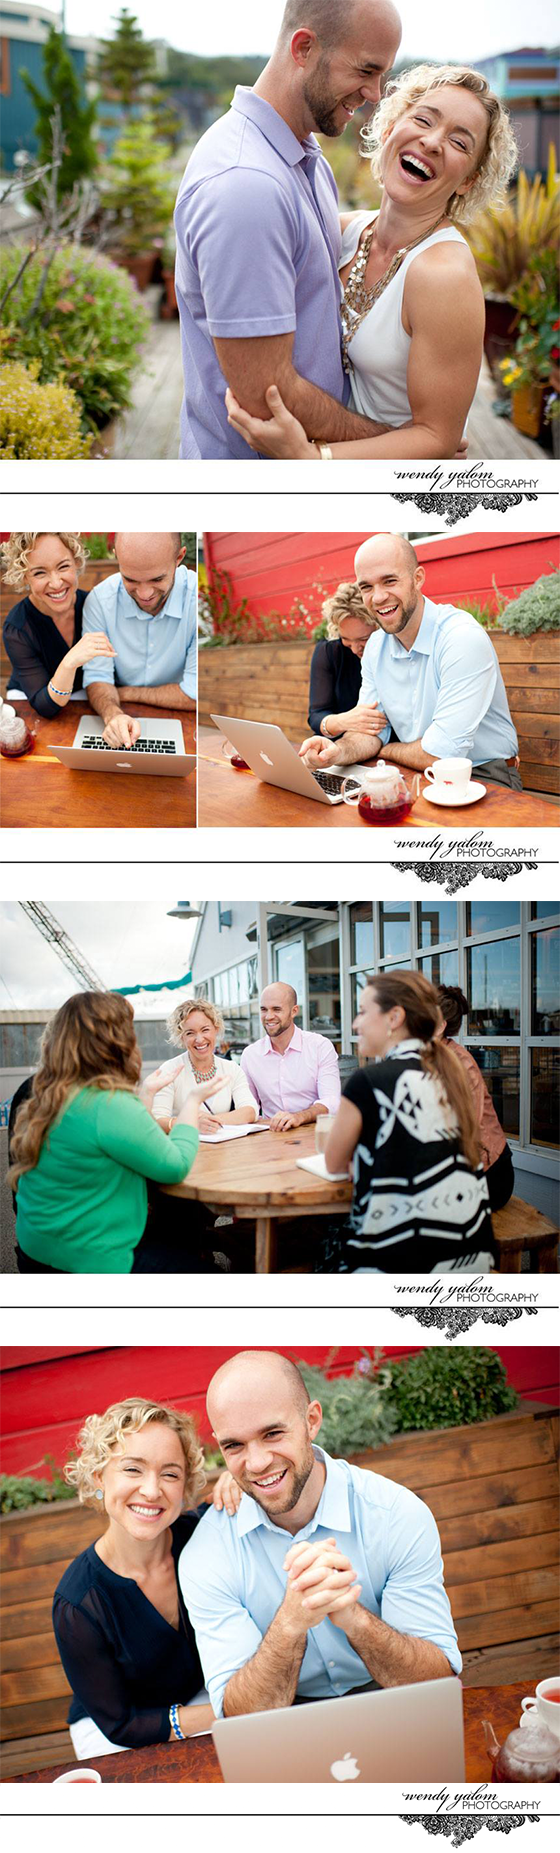 Personal Branding Photoshoot with Kate and Mike by Wendy K Yalom